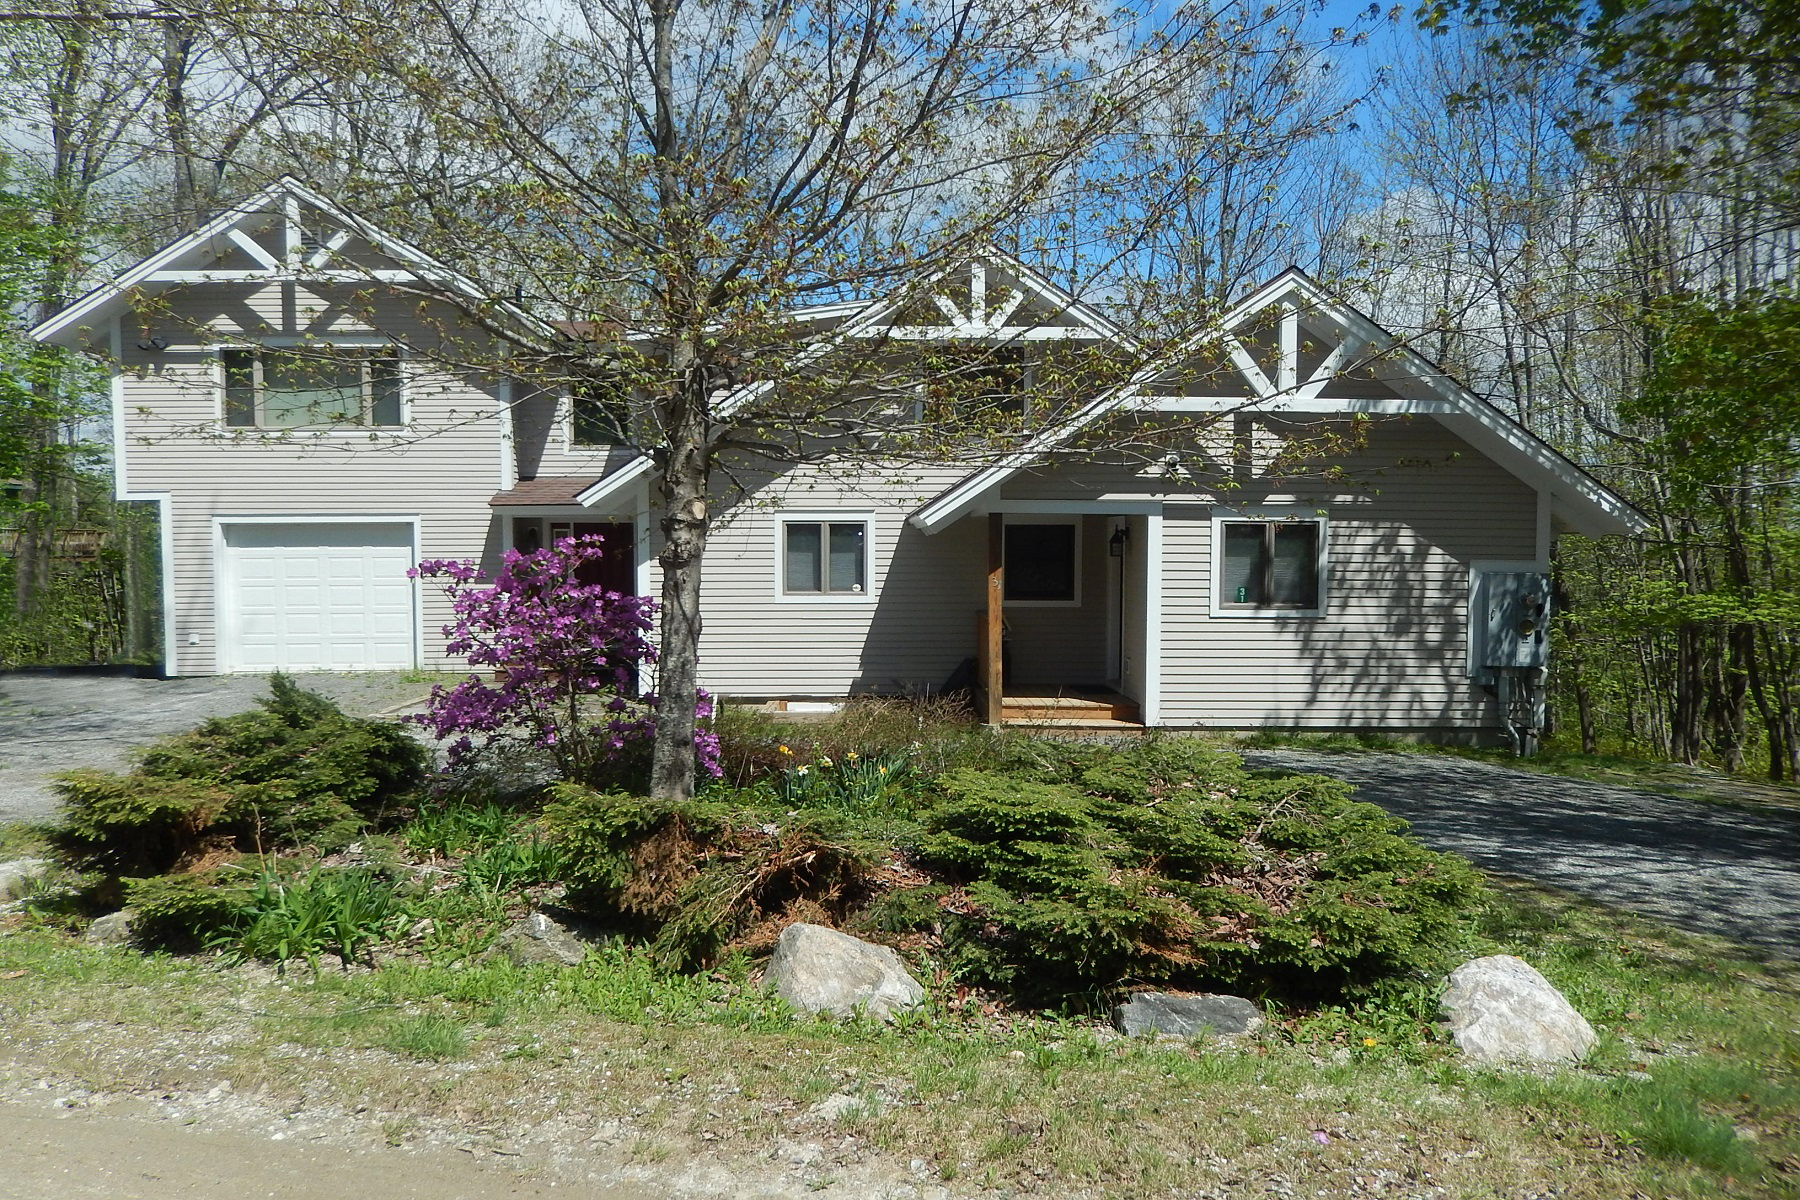 Single Family Home for Sale at Mountain Living on Okemo! 31 Komula Ludlow, Vermont, 05149 United States